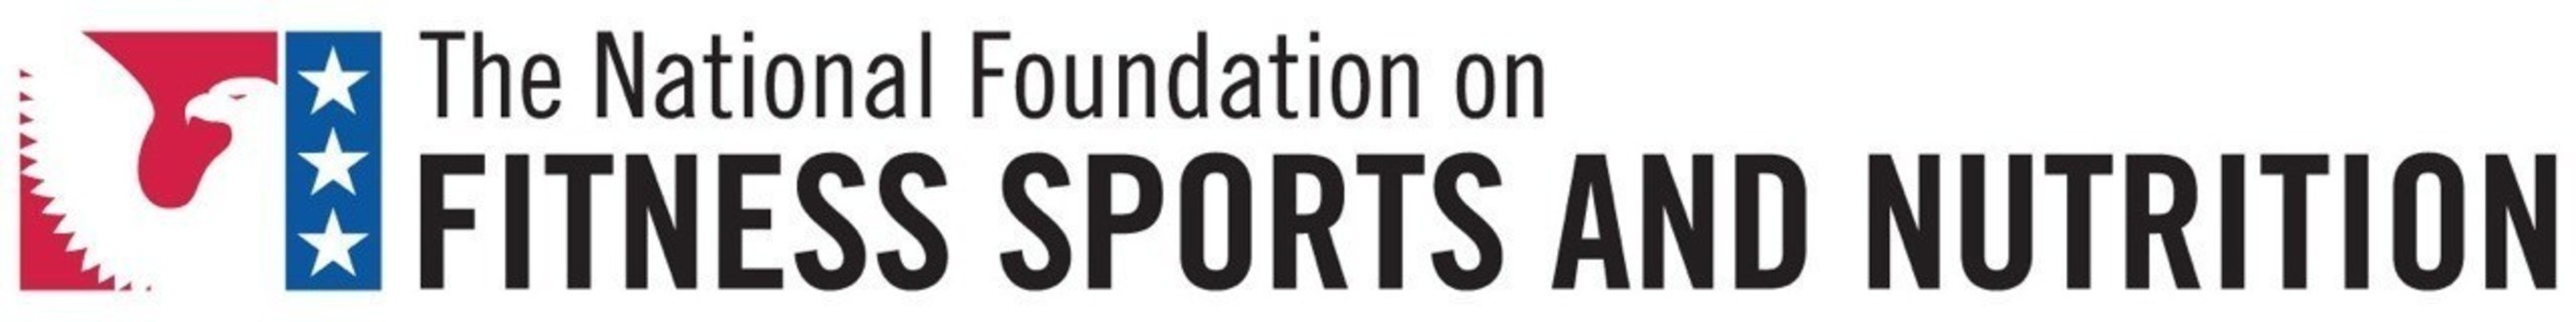 Chris Watts Named Executive Director of the National Foundation on Fitness, Sports & Nutrition